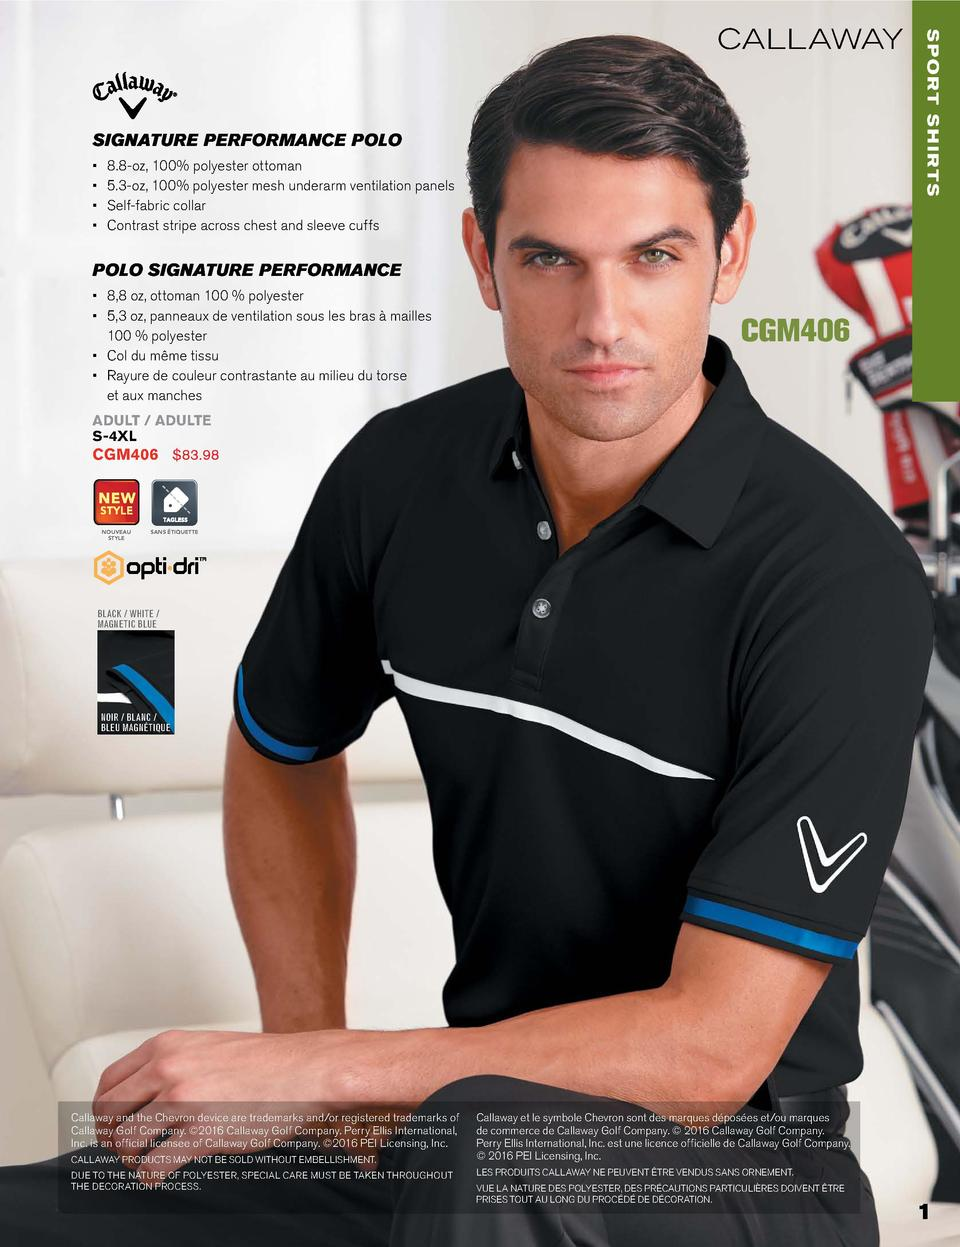 SIGNATURE PERFORMANCE POLO                      8.8-oz, 100  polyester ottoman 5.3-oz, 100  polyester mesh underarm ventil...